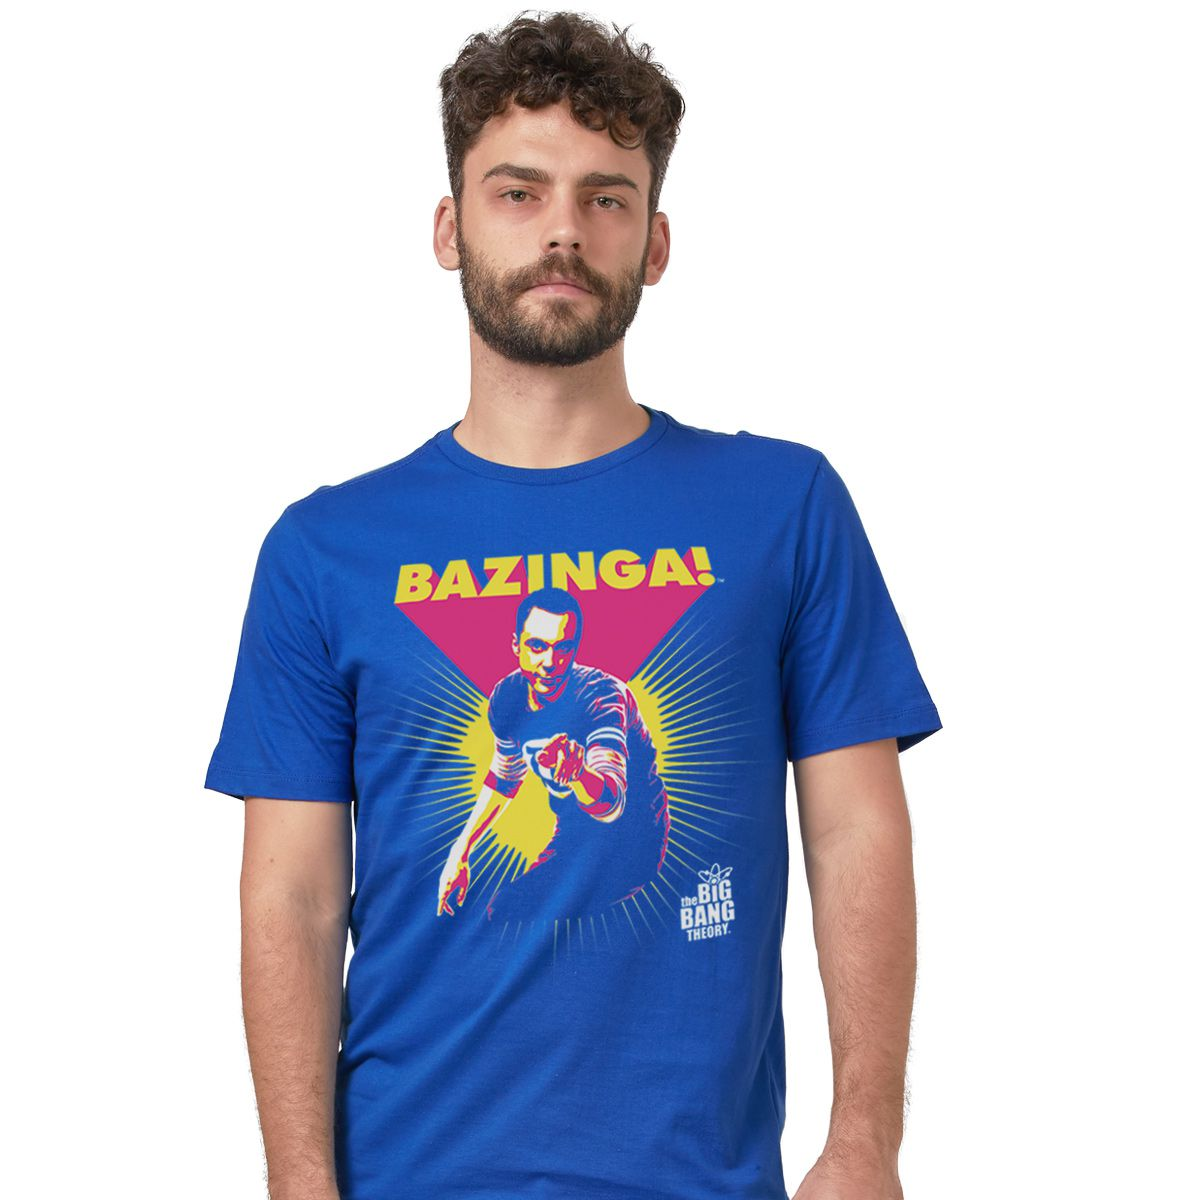 Camiseta Masculina The Big Bang Theory Bazinga!  - bandUP Store Marketplace